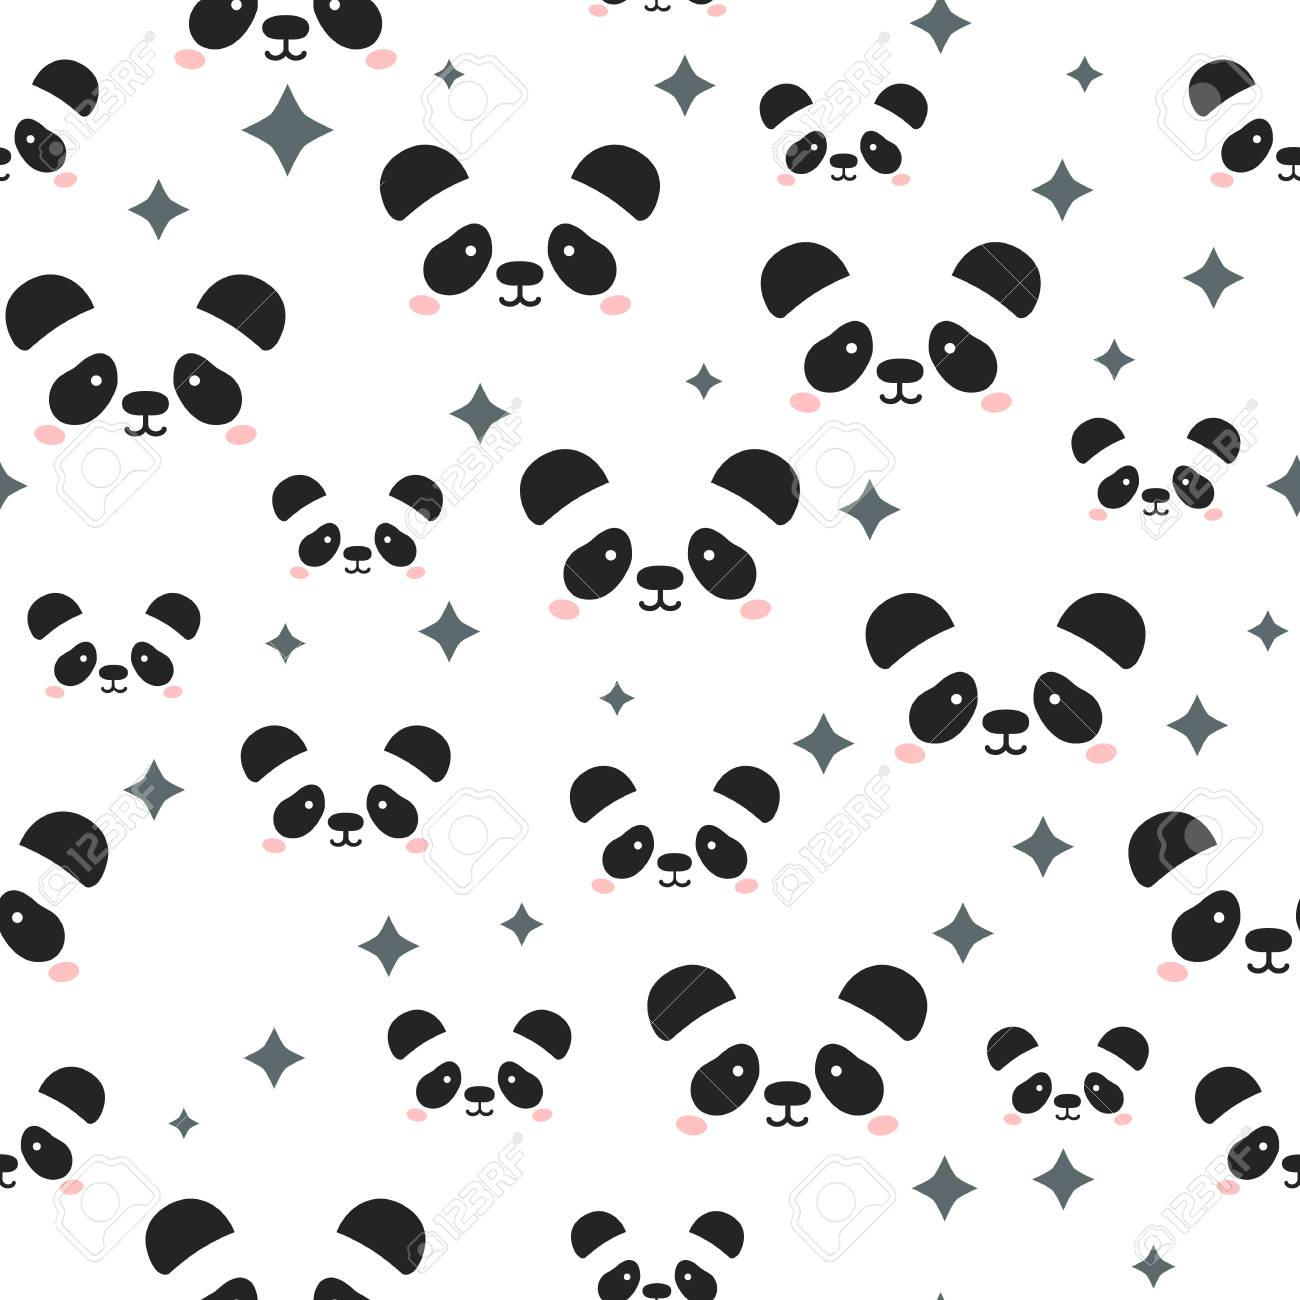 Wallpaper Design For Phone Panda Home Office Ideas